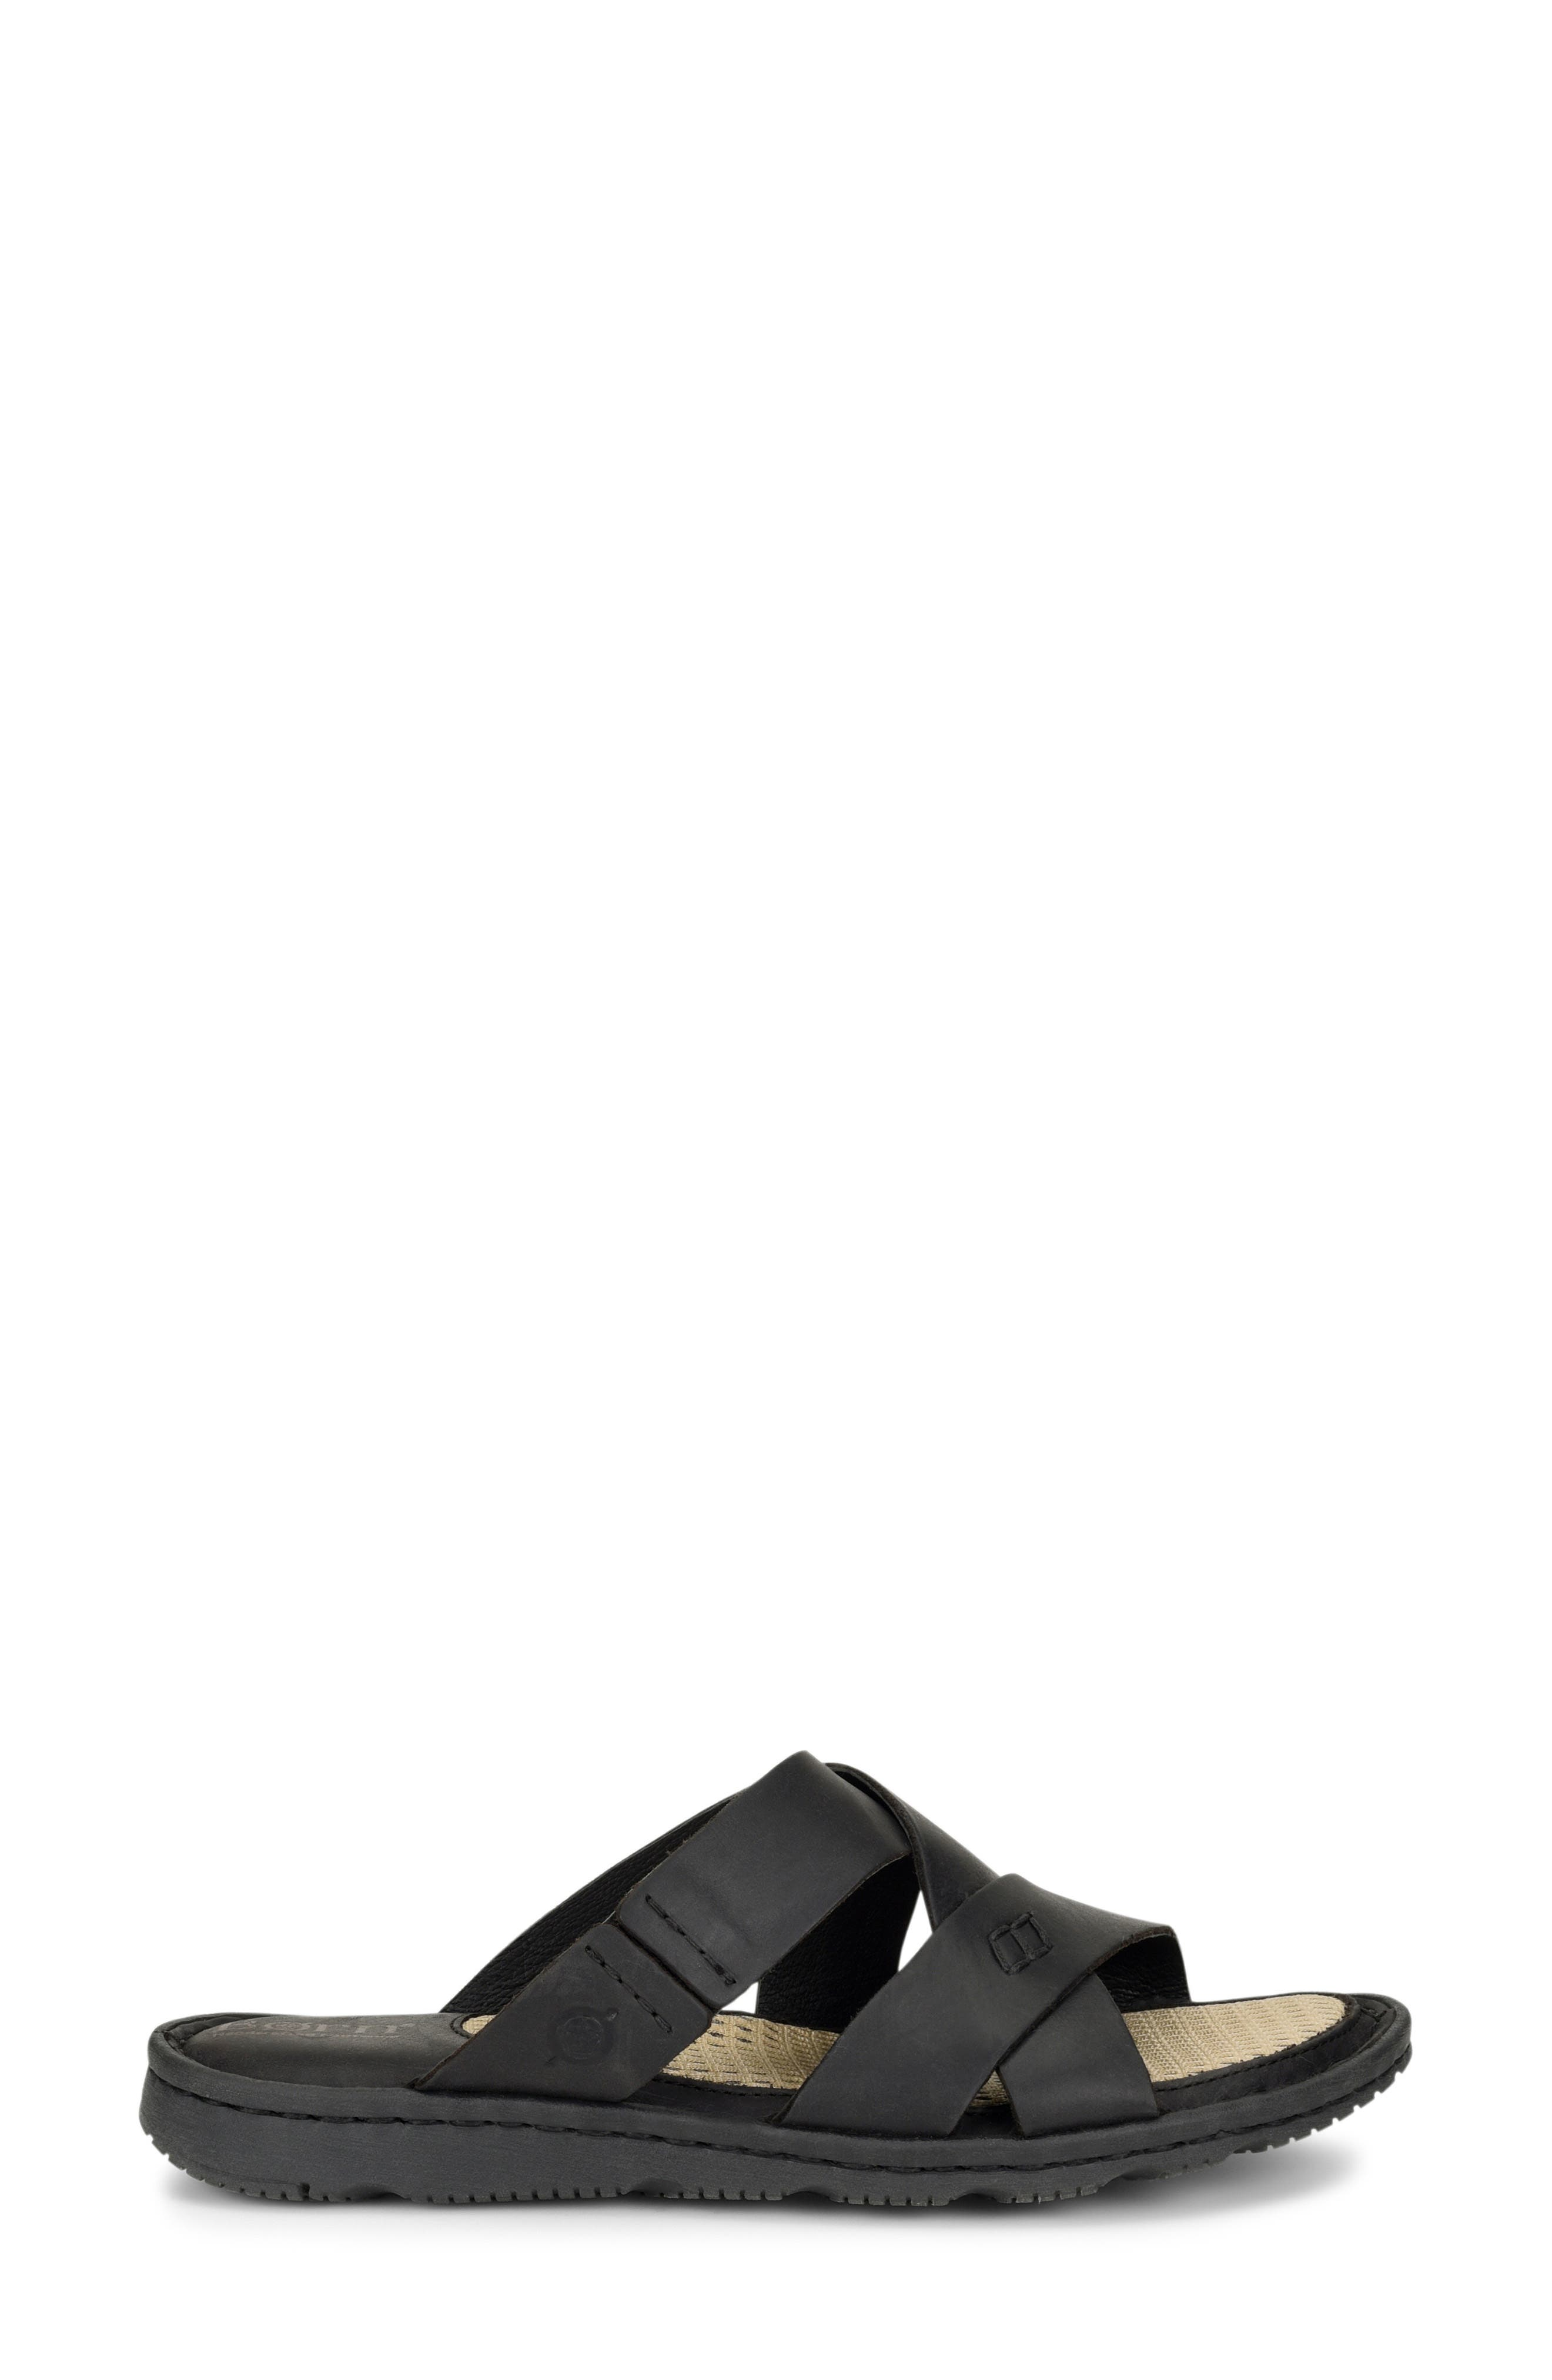 Hayka Asymmetrical Slide Sandal,                             Alternate thumbnail 3, color,                             BLACK LEATHER